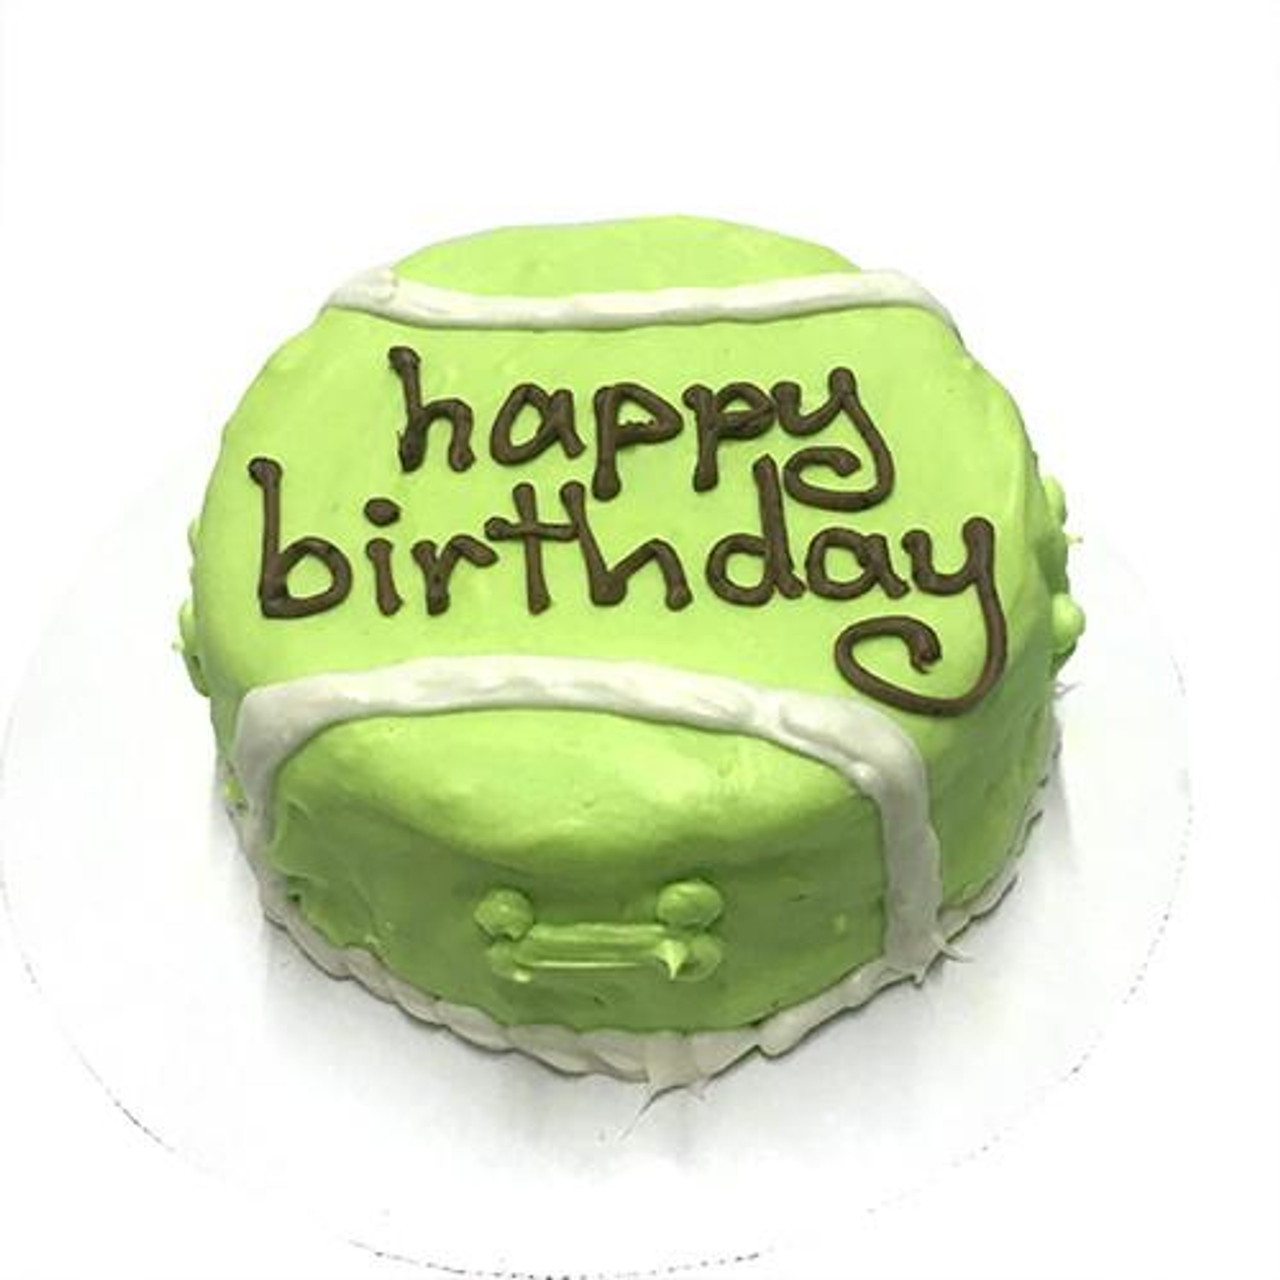 Pleasing Customized Birthday Cakes For Dogs Tennis Ball Organic Dog Treats Personalised Birthday Cards Veneteletsinfo